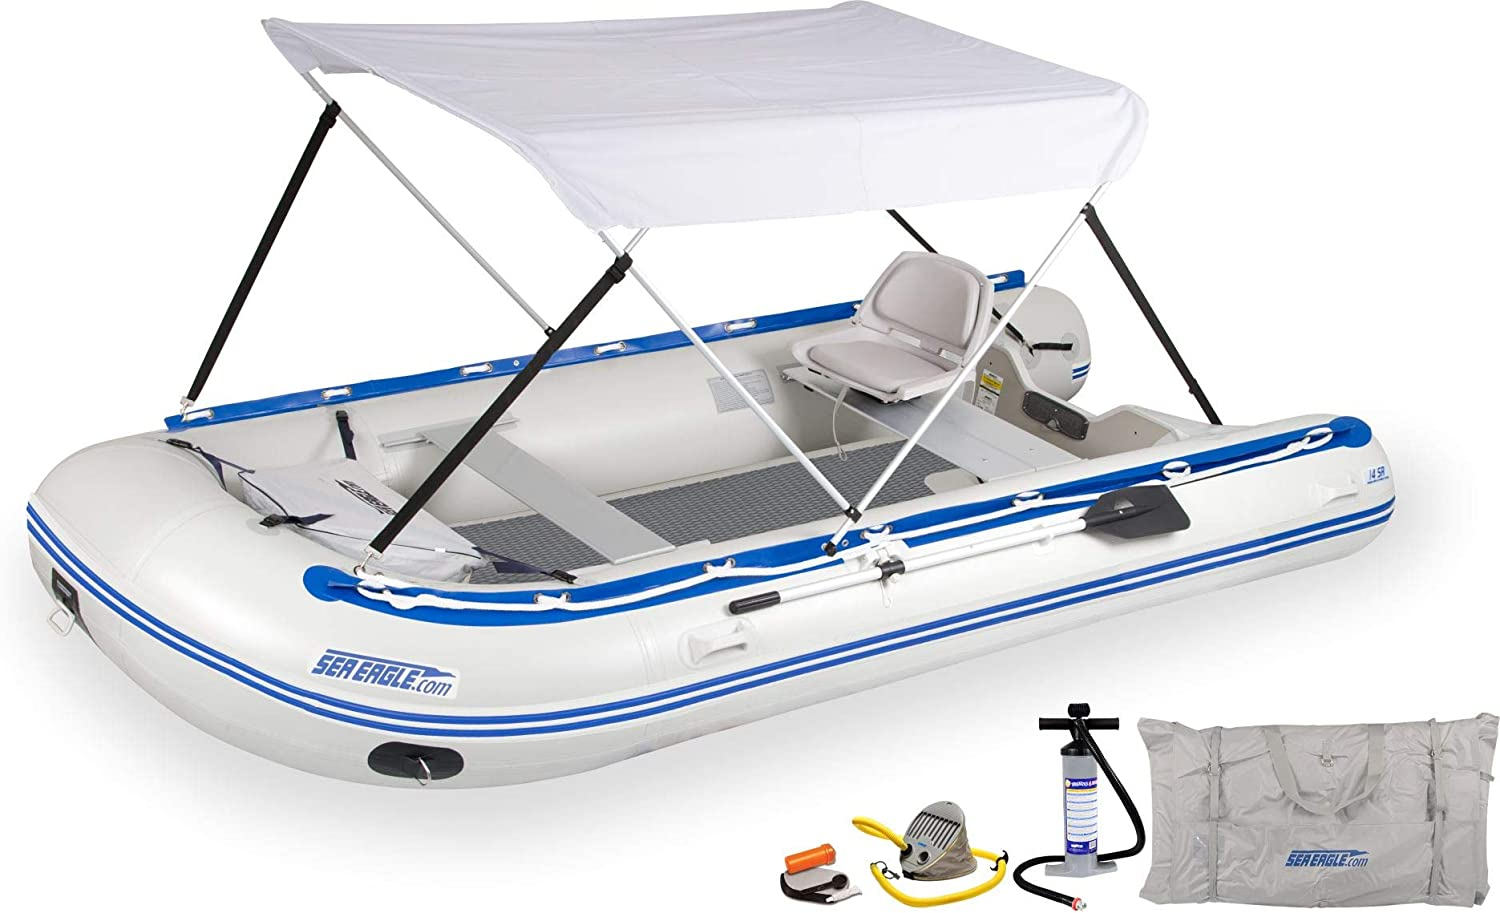 14SR Sport Runabout Drop-Stitch Canopy Swivel Year-end annual account Seat Cheap